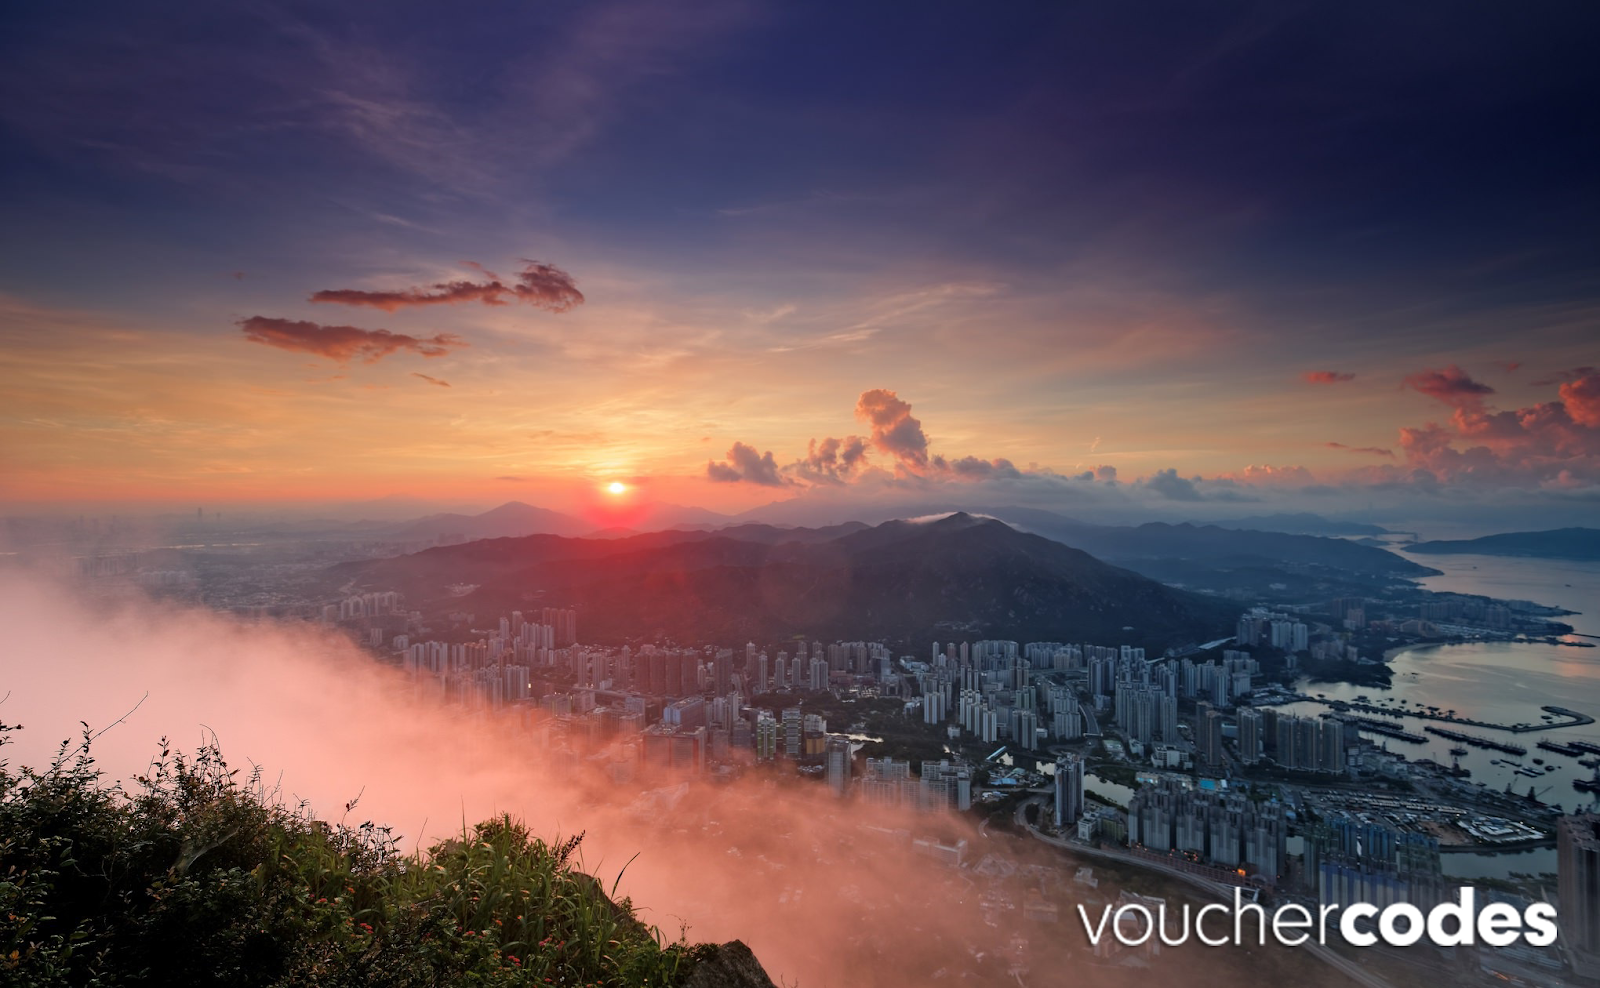 Voucher Codes Hong Kong: 4 Tranquil Places in Hong Kong that Offer Peace amidst Urban Chaos